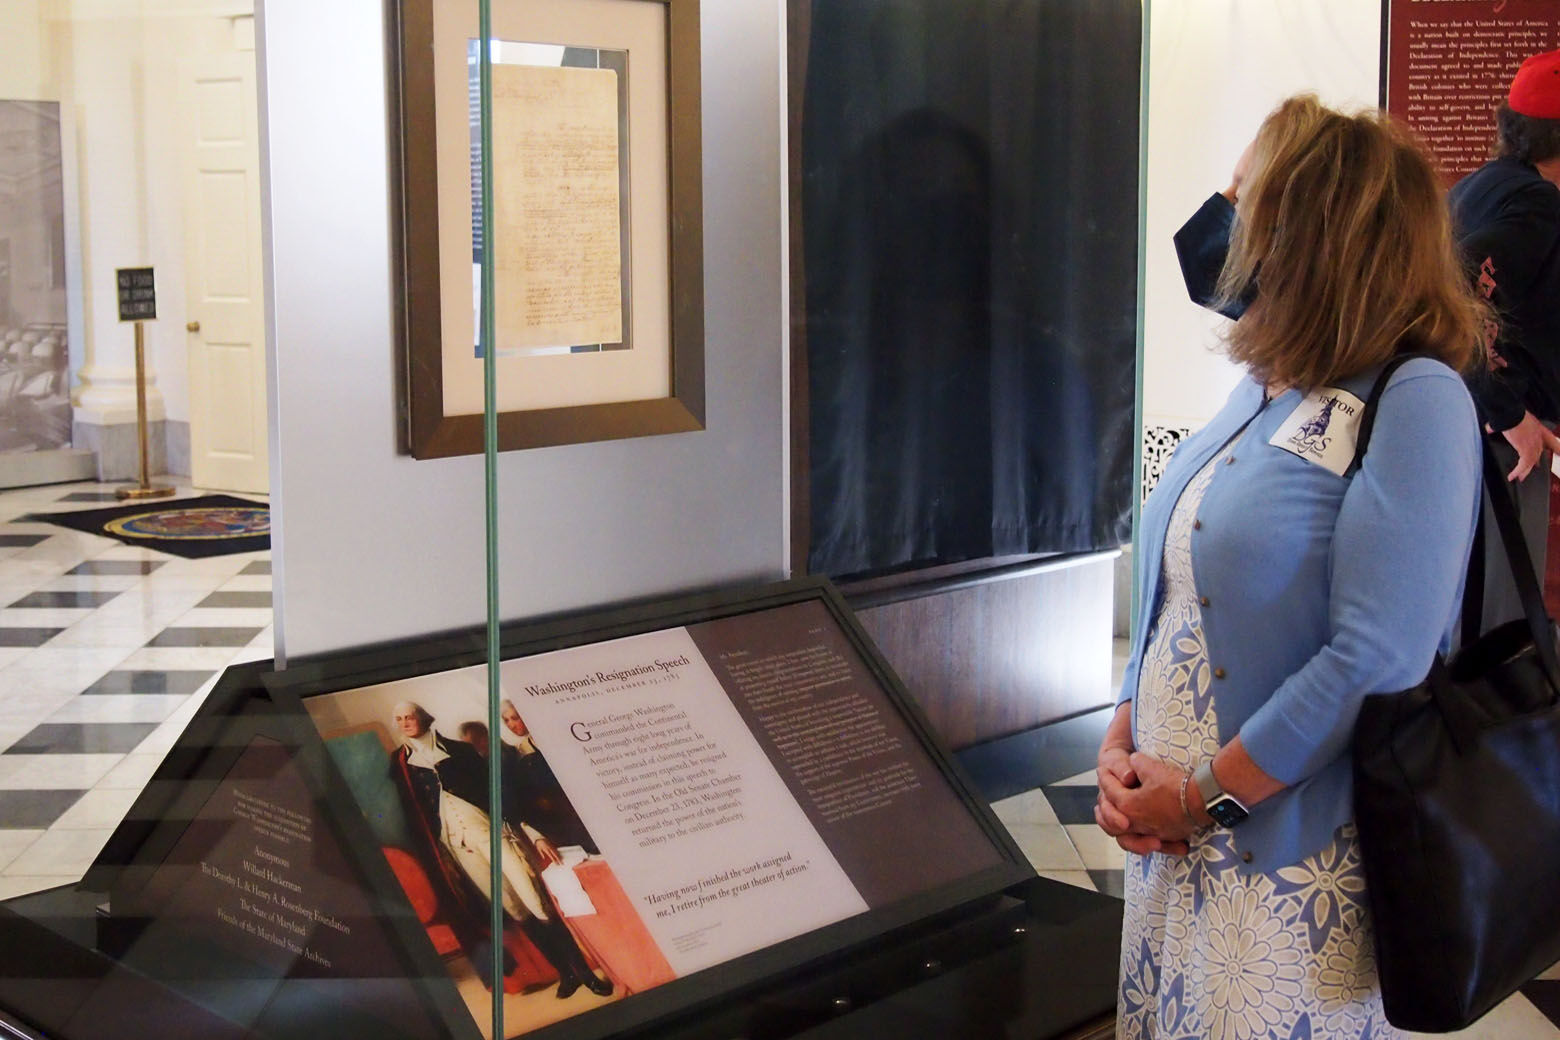 Newspaper prints of US Constitution on display in Annapolis